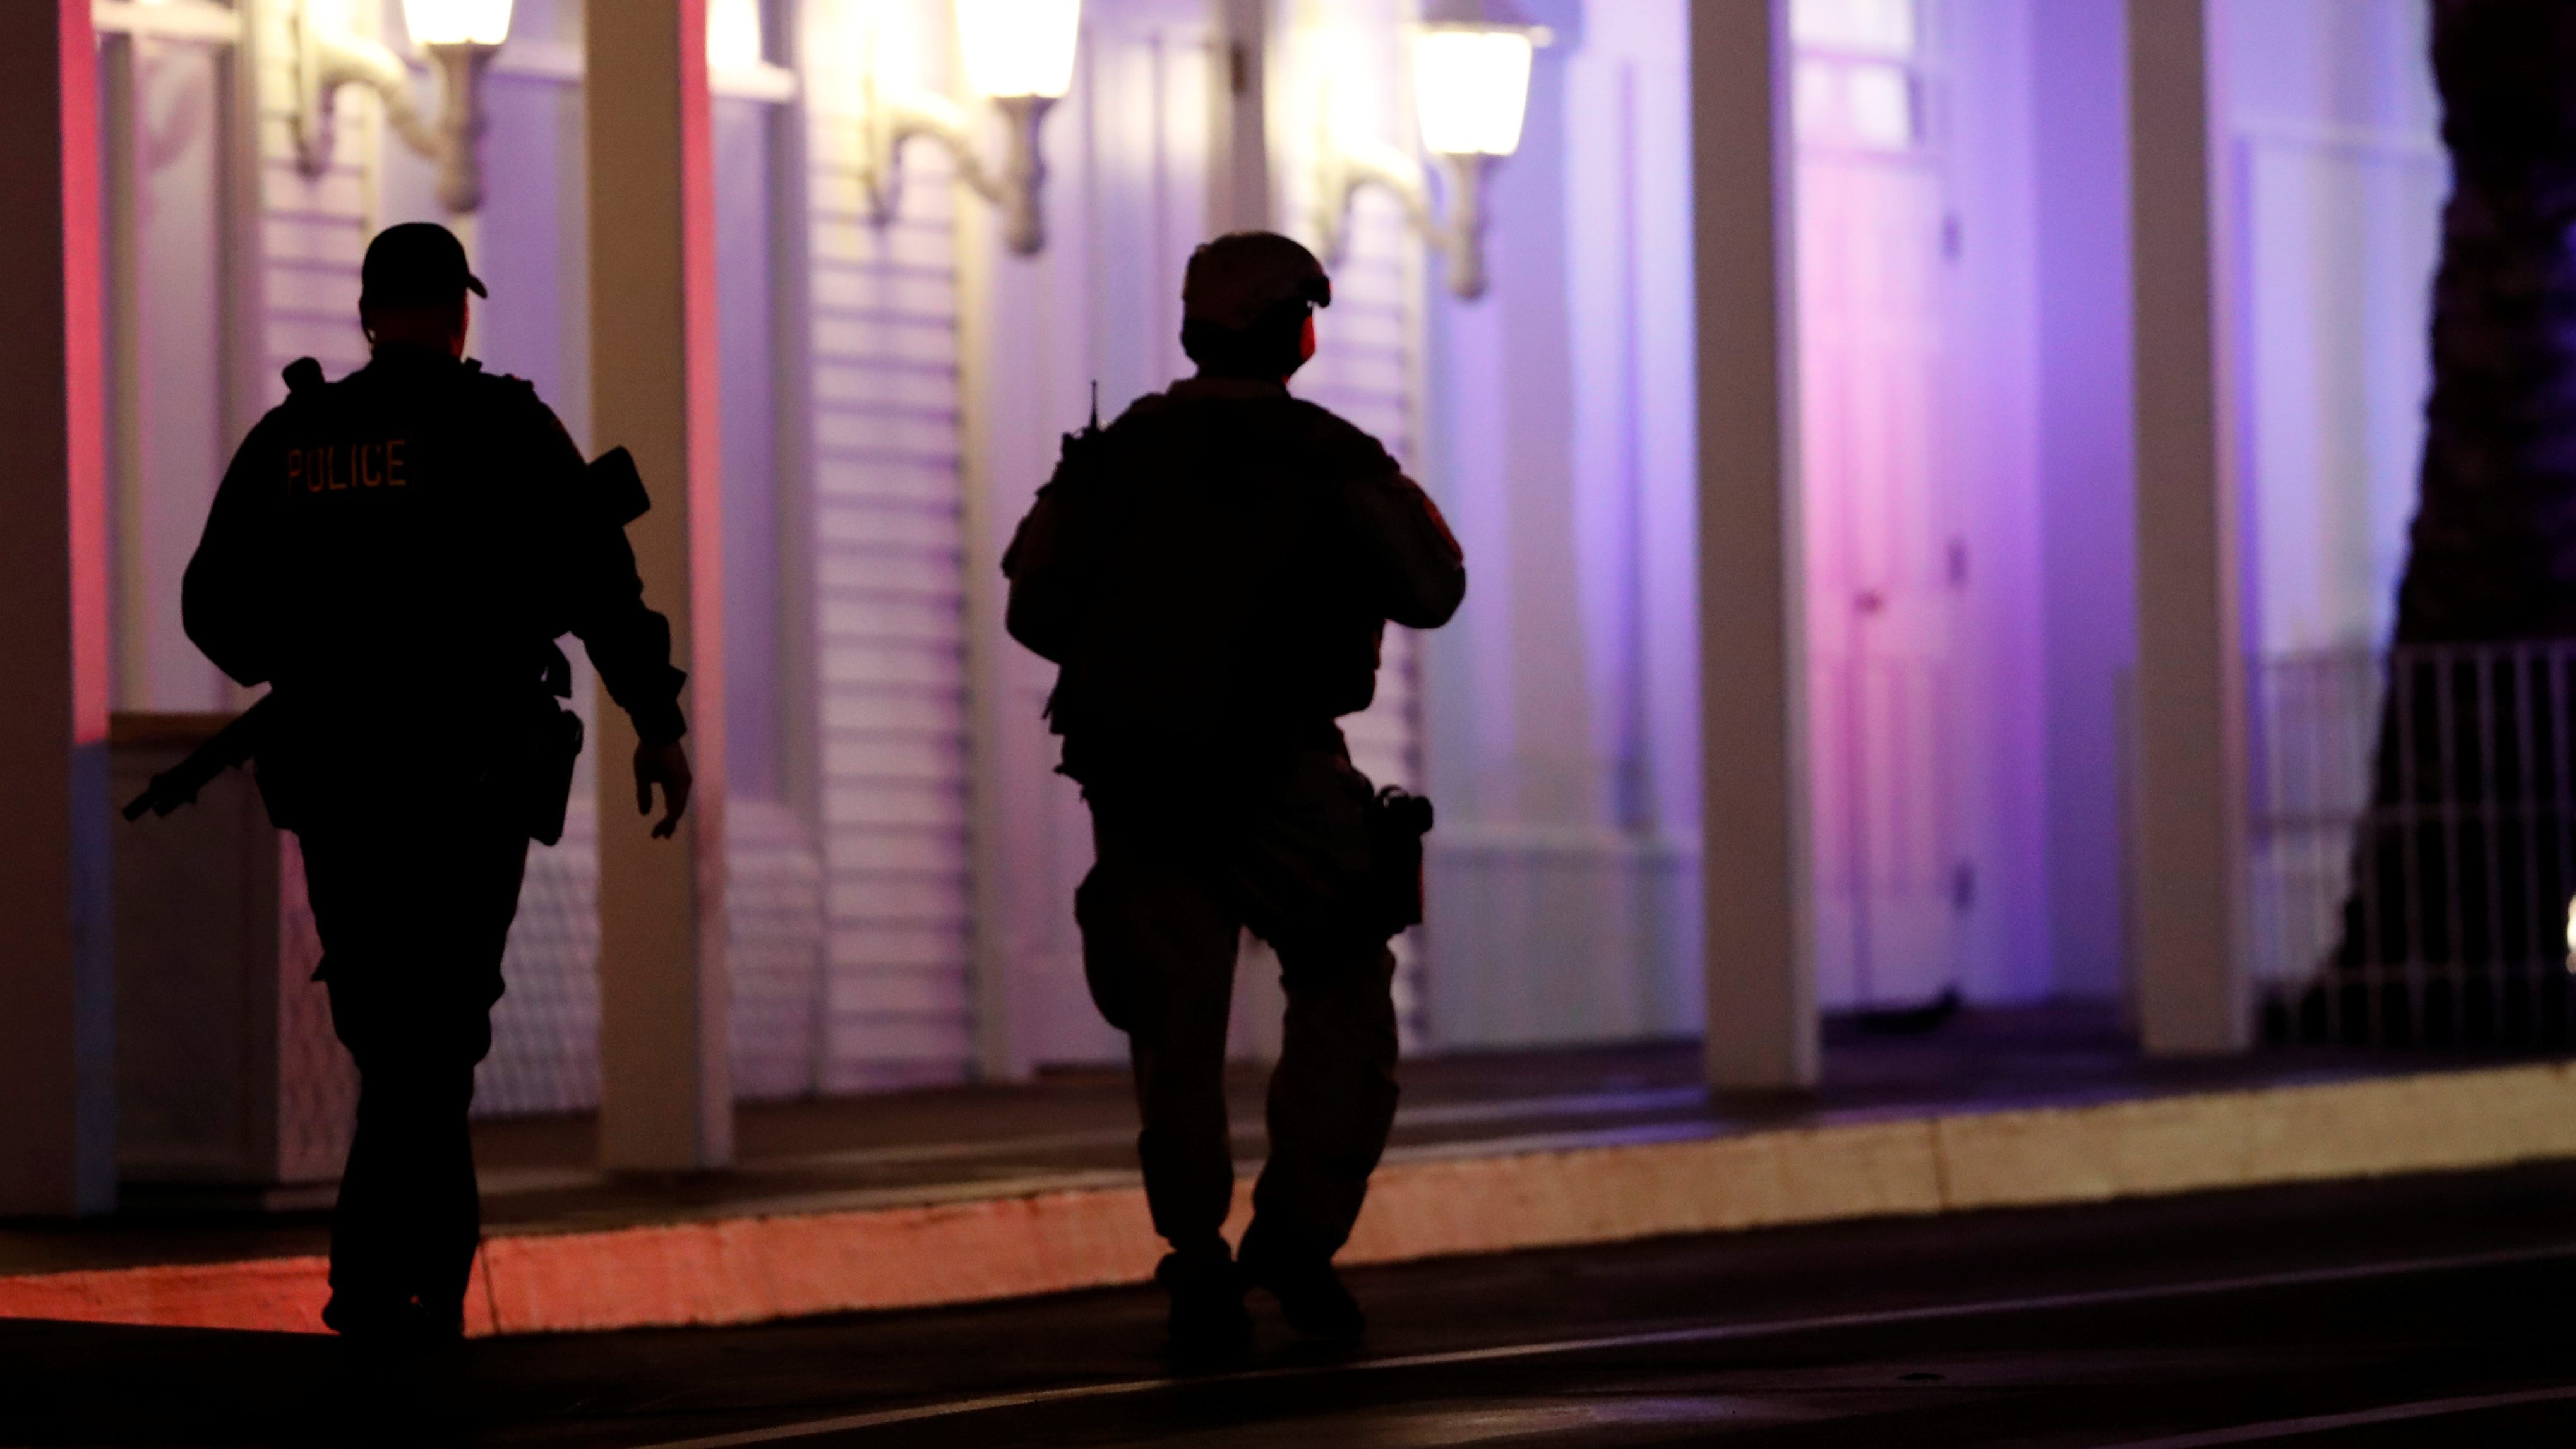 Mass shooting at a music festival on the Las Vegas Strip in Las Vegas